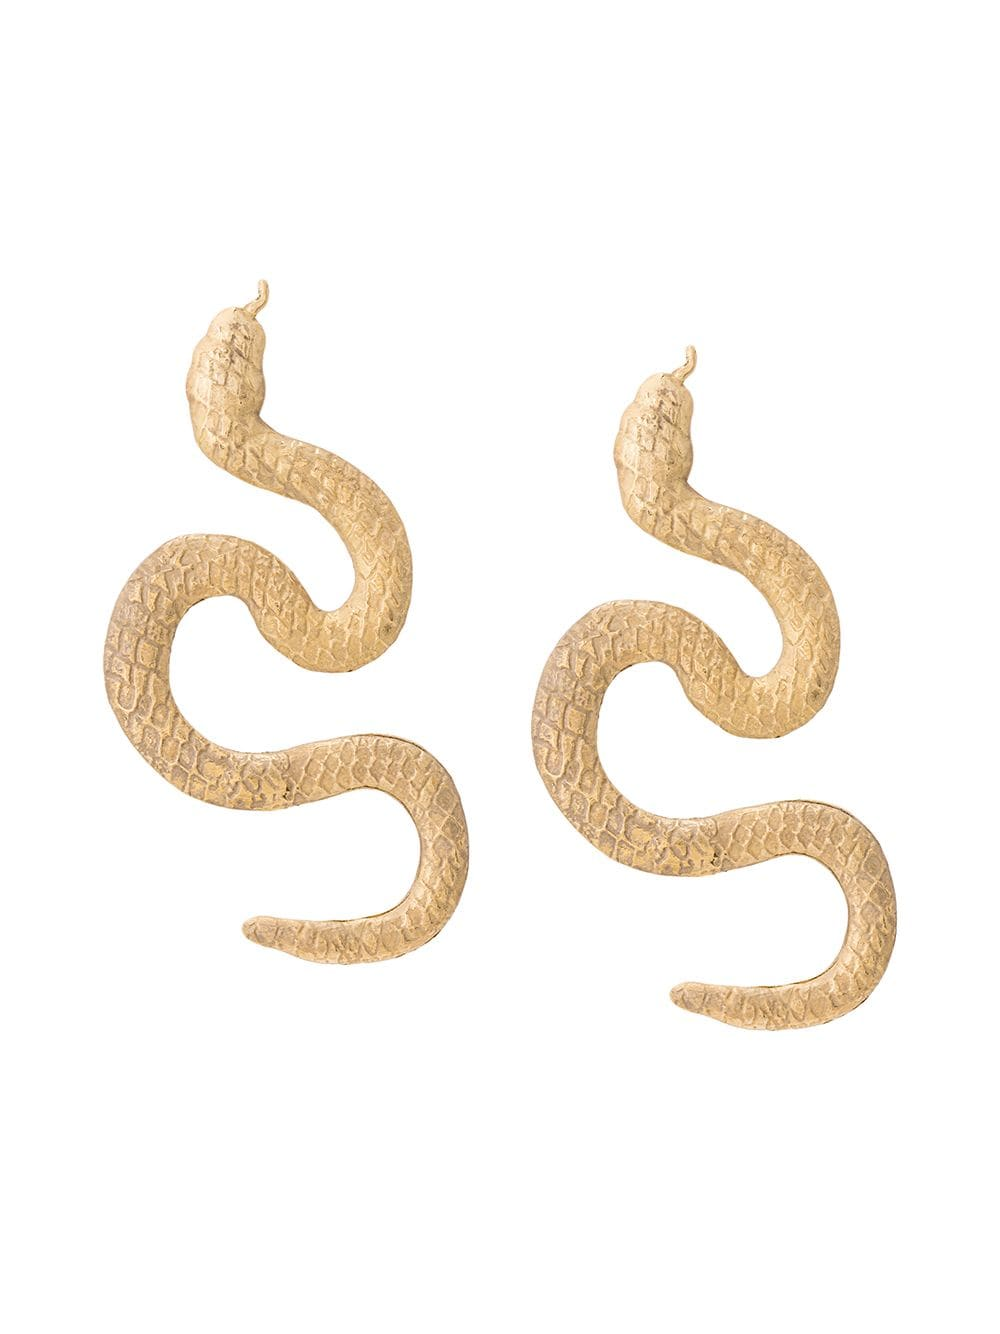 Natia x Lako snake earrings by Natia, available on farfetch.com for $159 Kendall Jenner Jewellery Exact Product